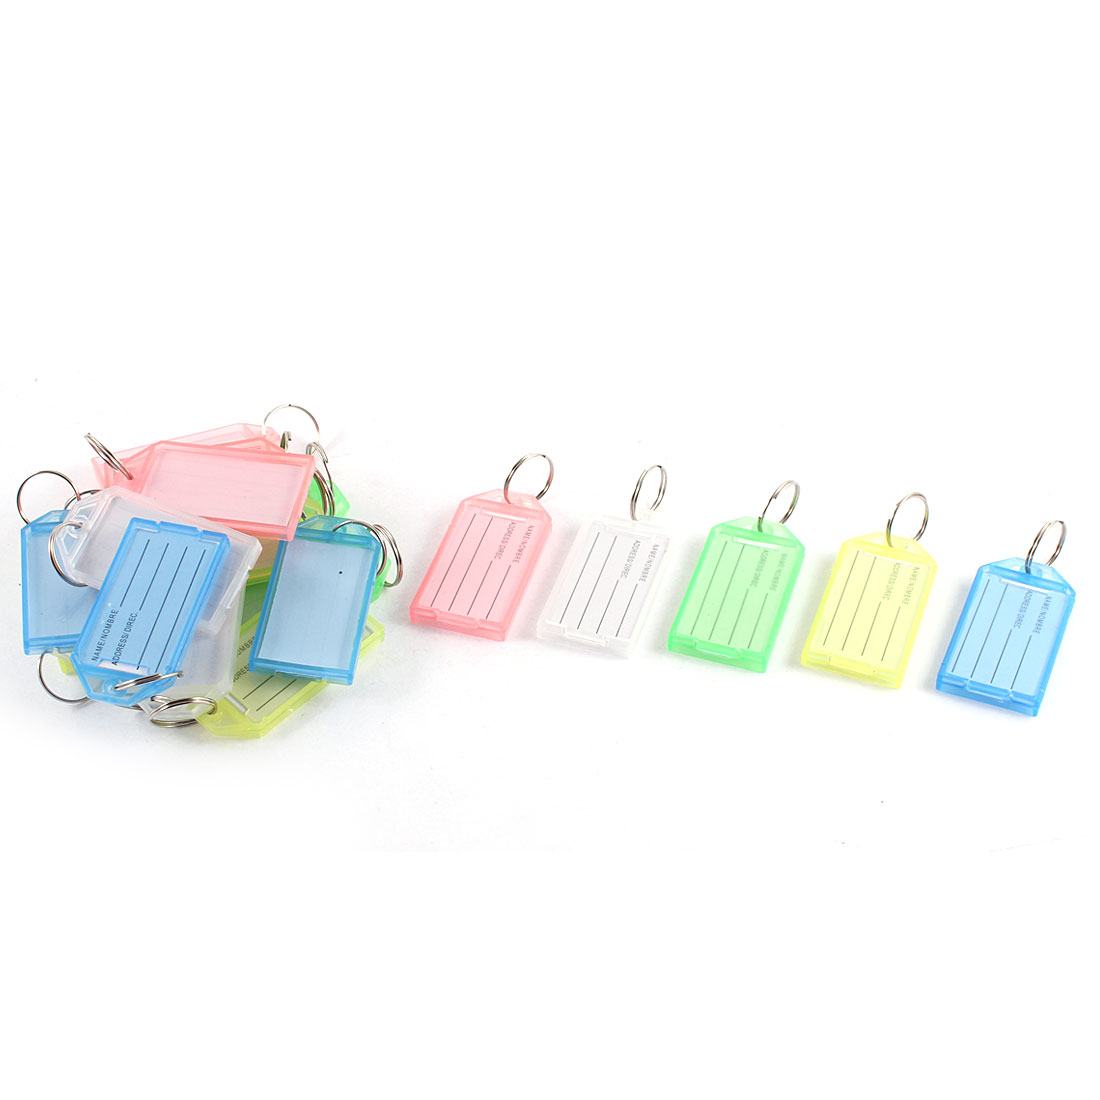 20PCS Assorted Color Plastic Key Fobs Luggage ID Tags Name Card Keyring Keychain w Label